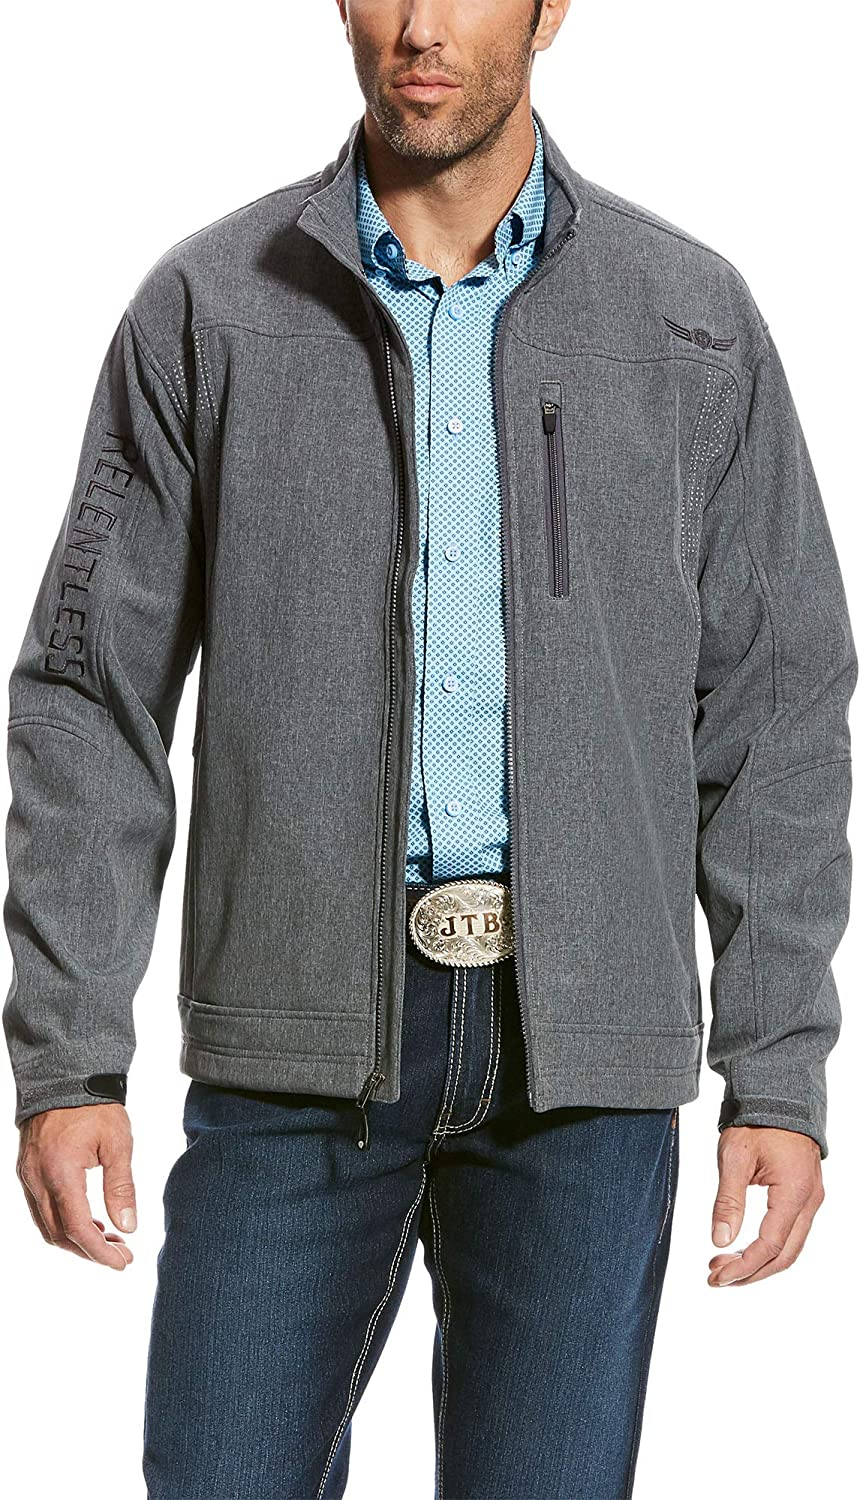 ARIAT Men's Latest item Relentless Willpower Softshell Jacket Size Charcoal Max 71% OFF